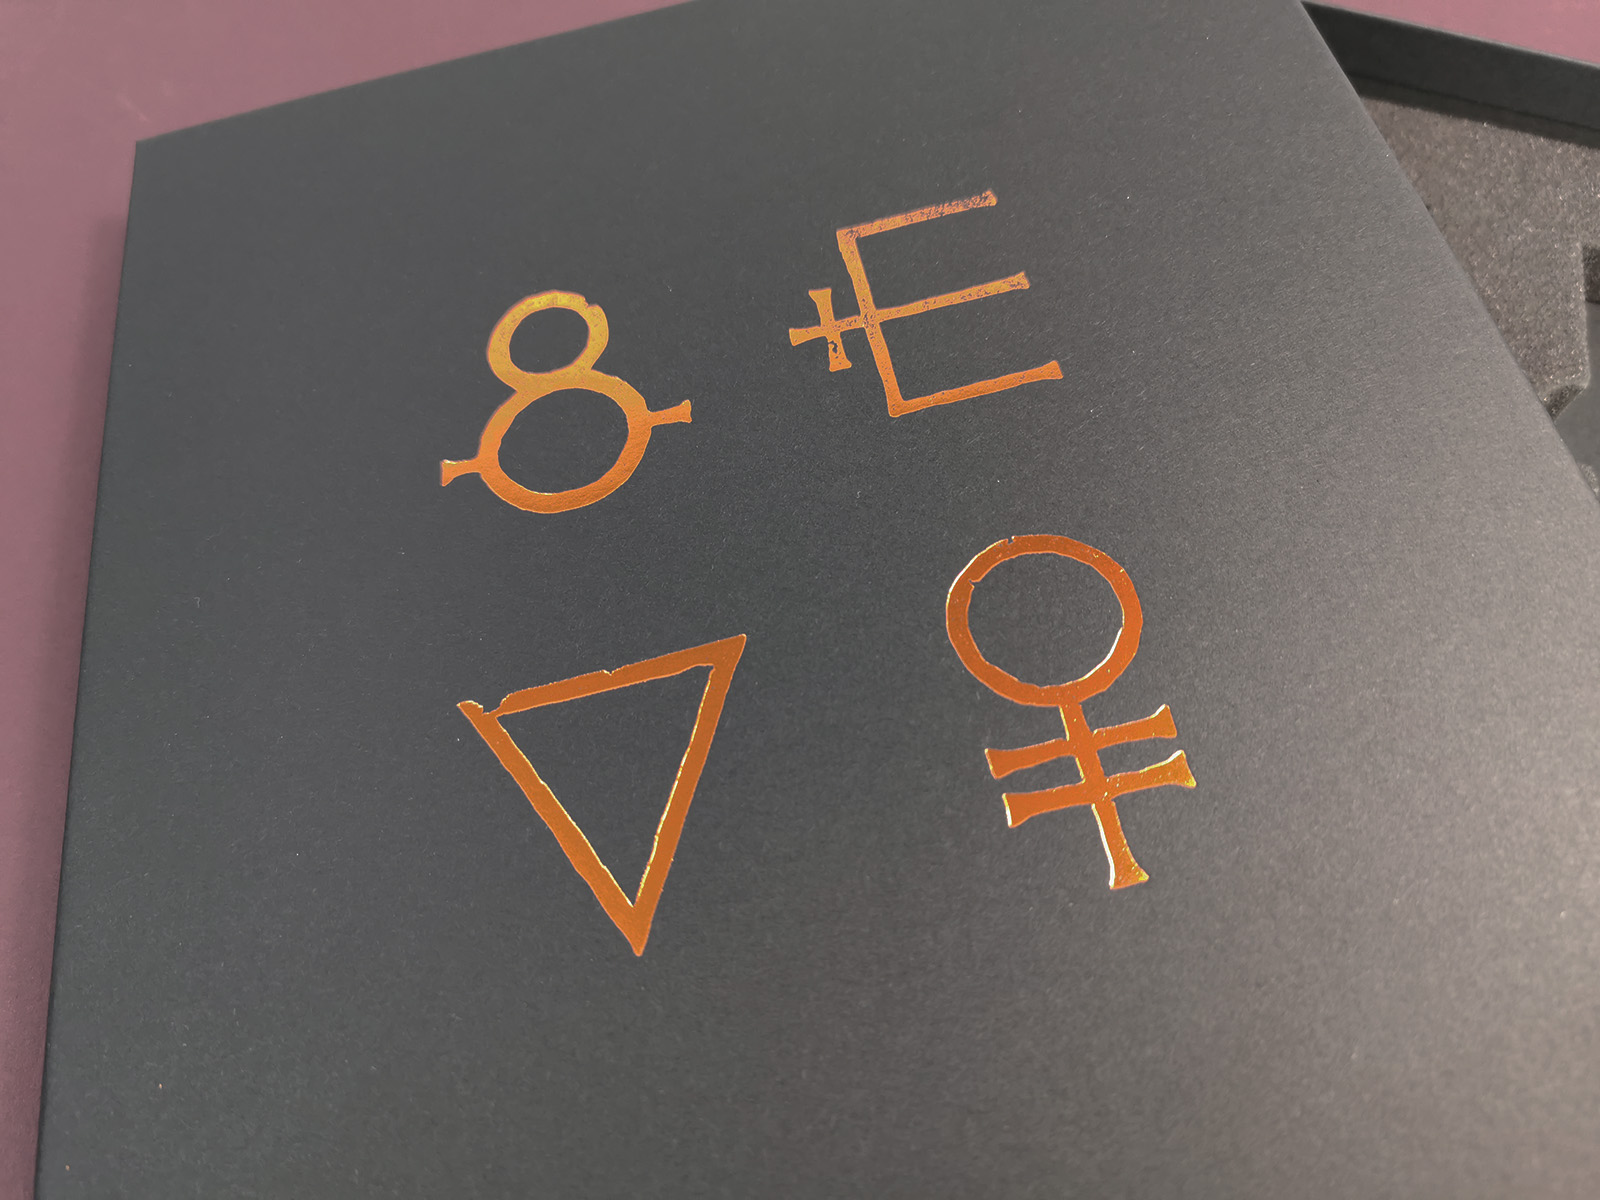 Close-up of copper metallic foil printing on a black A4 quad cassette tape presentation box